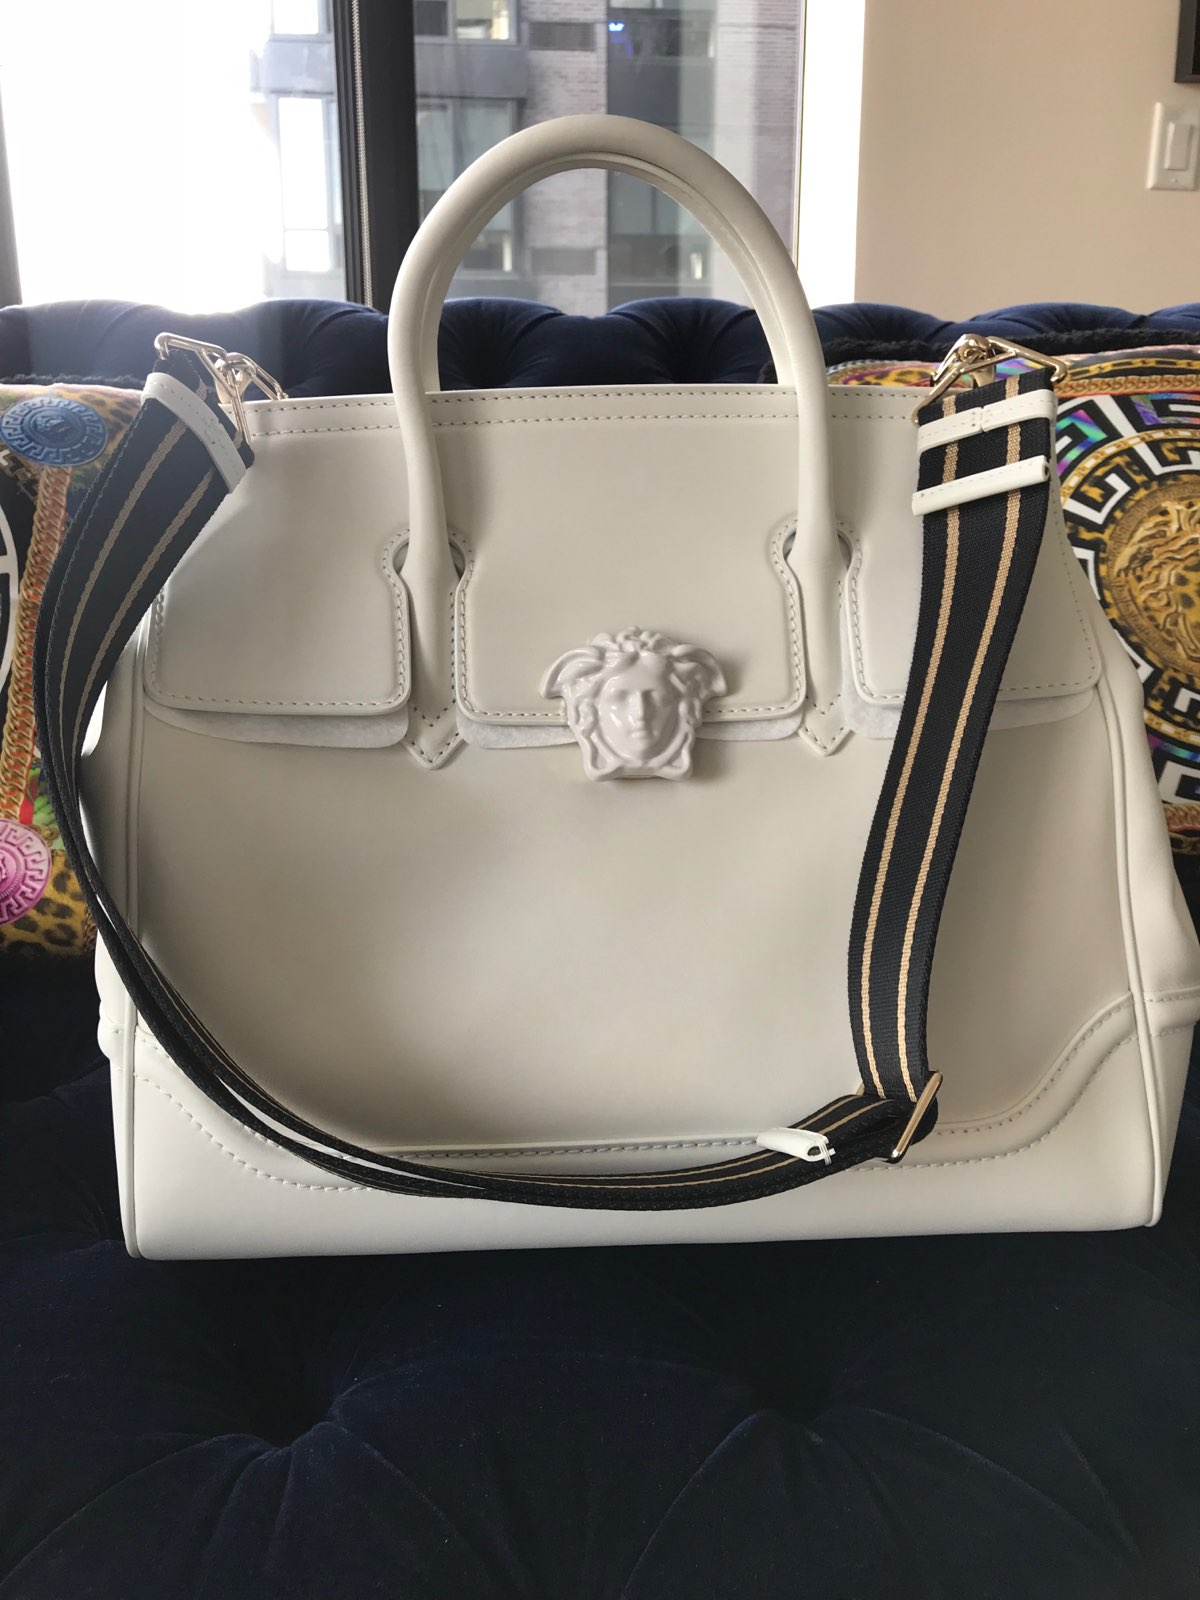 Versace  Palazzo Empire Large Bag (White) · Stush Fashionista ... 0619a68a78e1a